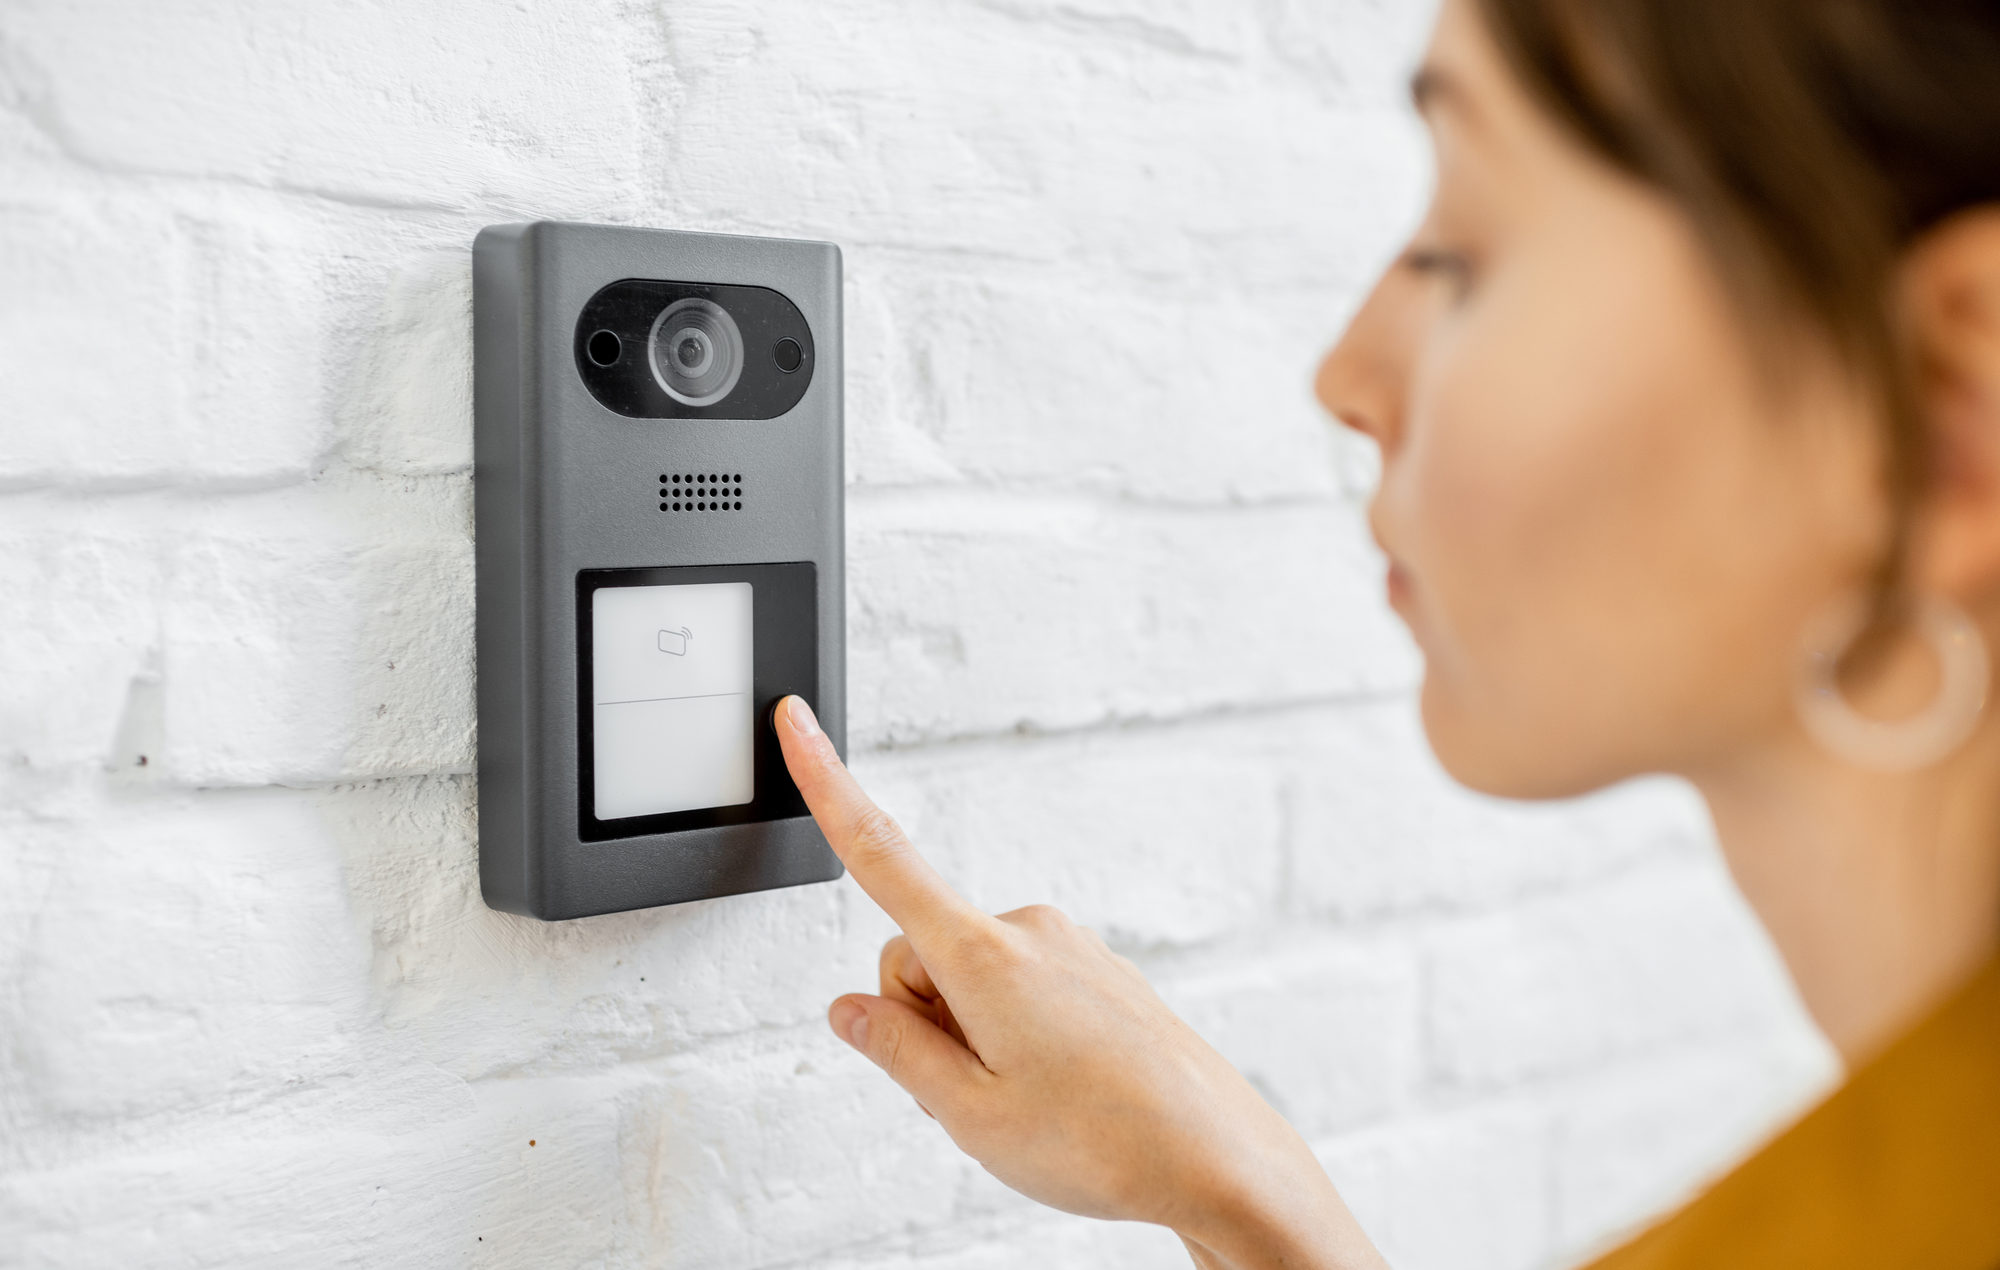 What To Look For When Buying A Video Doorbell